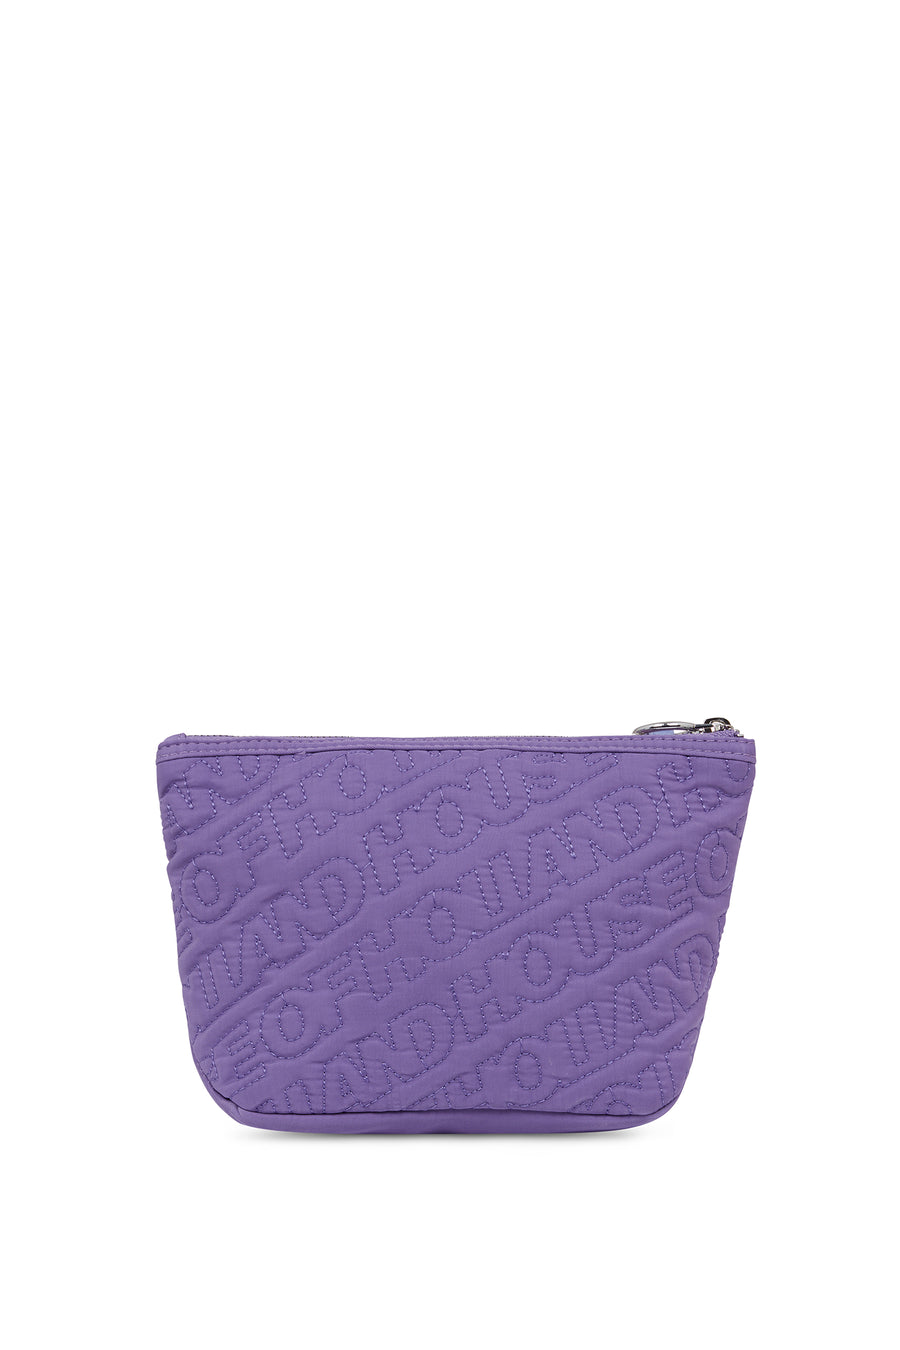 'HOH' Purple Embroidered Grab Bag